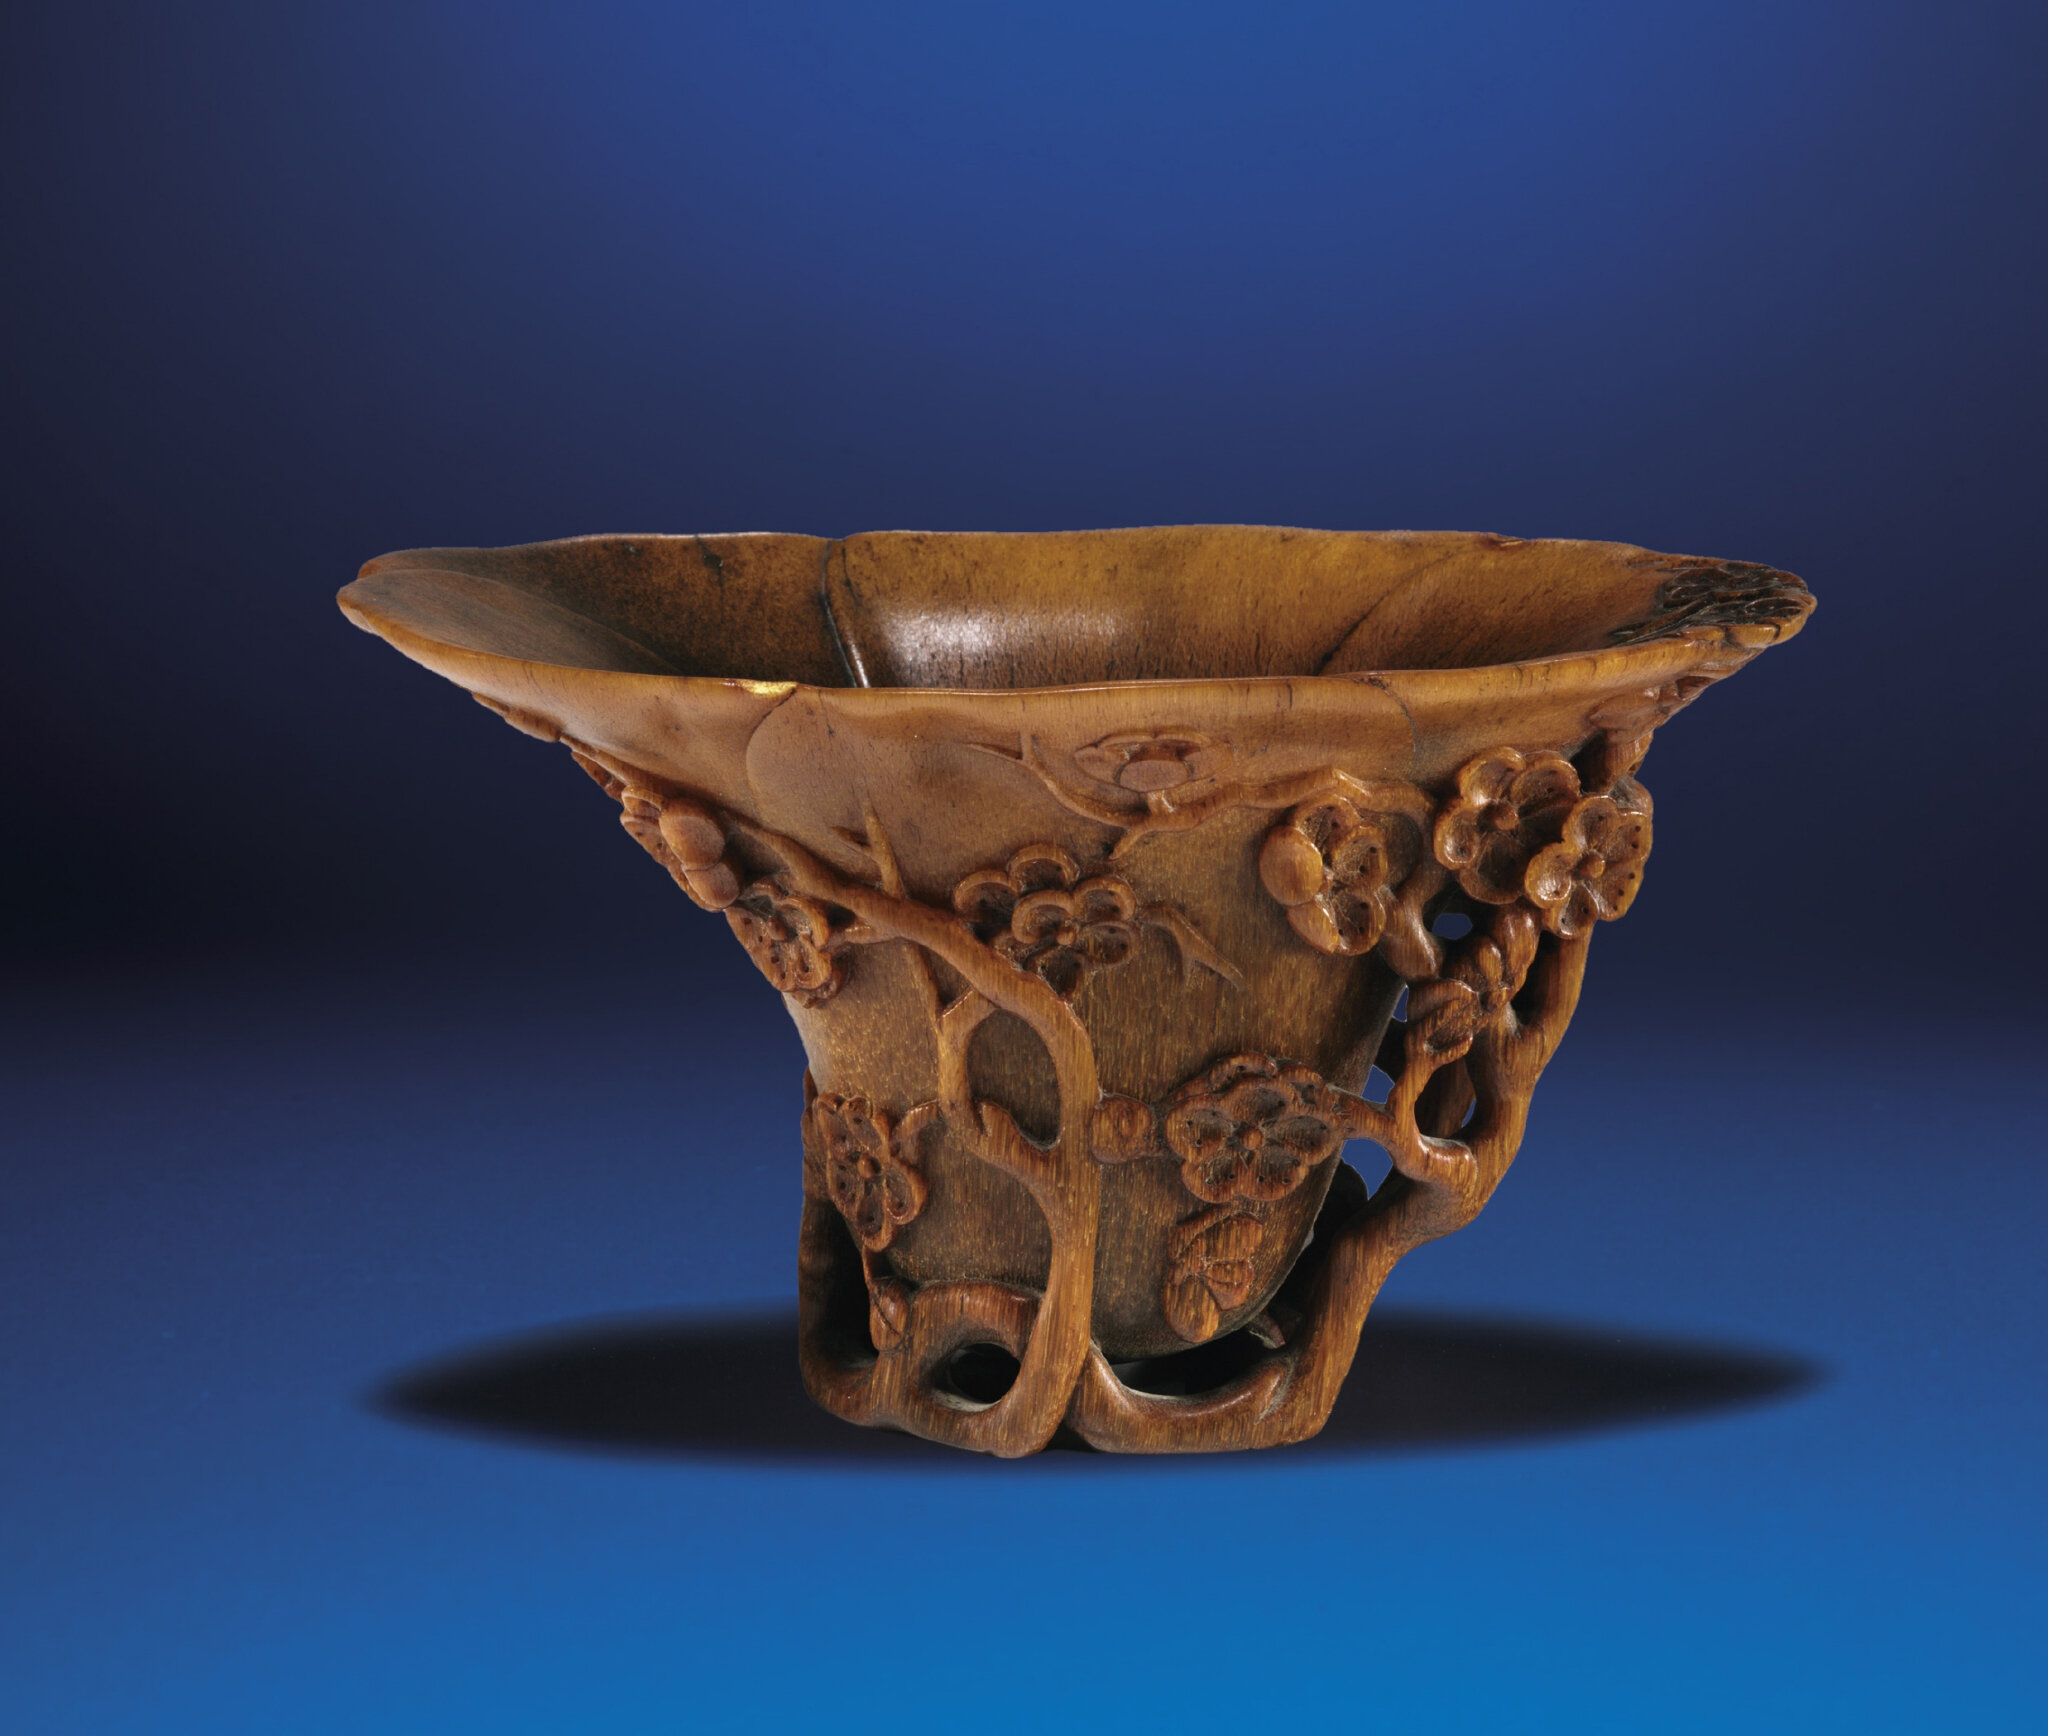 2012_HGK_02963_2178_000(a_carved_rhinoceros_horn_prunus_libation_cup_qing_dynasty_18th_century)